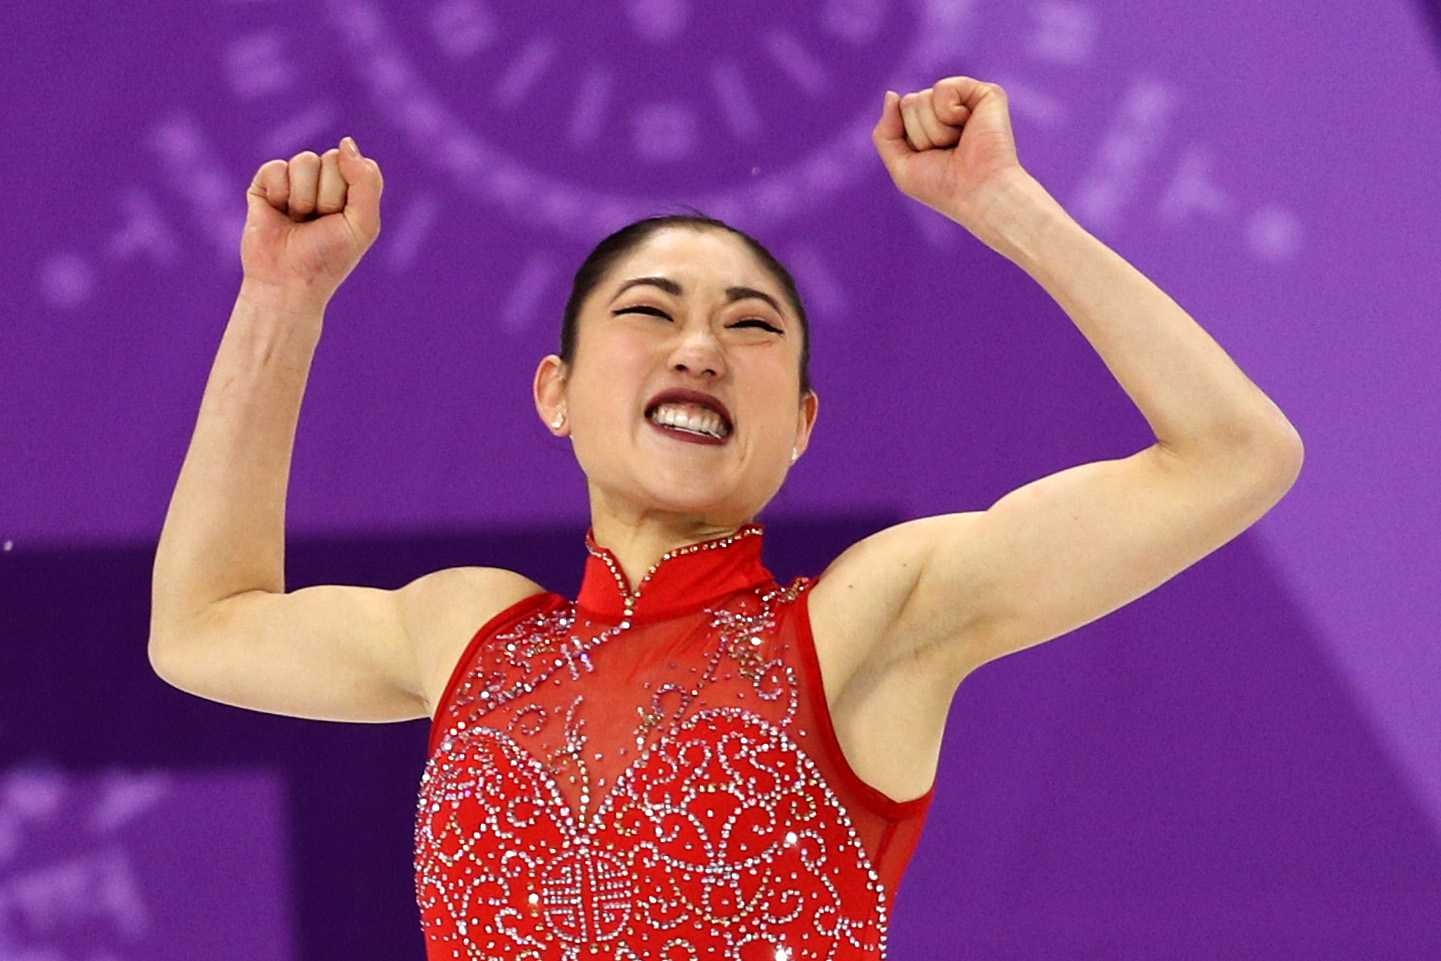 Mirai Nagasu of the United States of America celebrates after competing in the Figure Skating Team Event Ladie's Single Free Skating on day three of the Pyeong Chang 2018 Winter Olympic Games at Gangneung Ice Arena